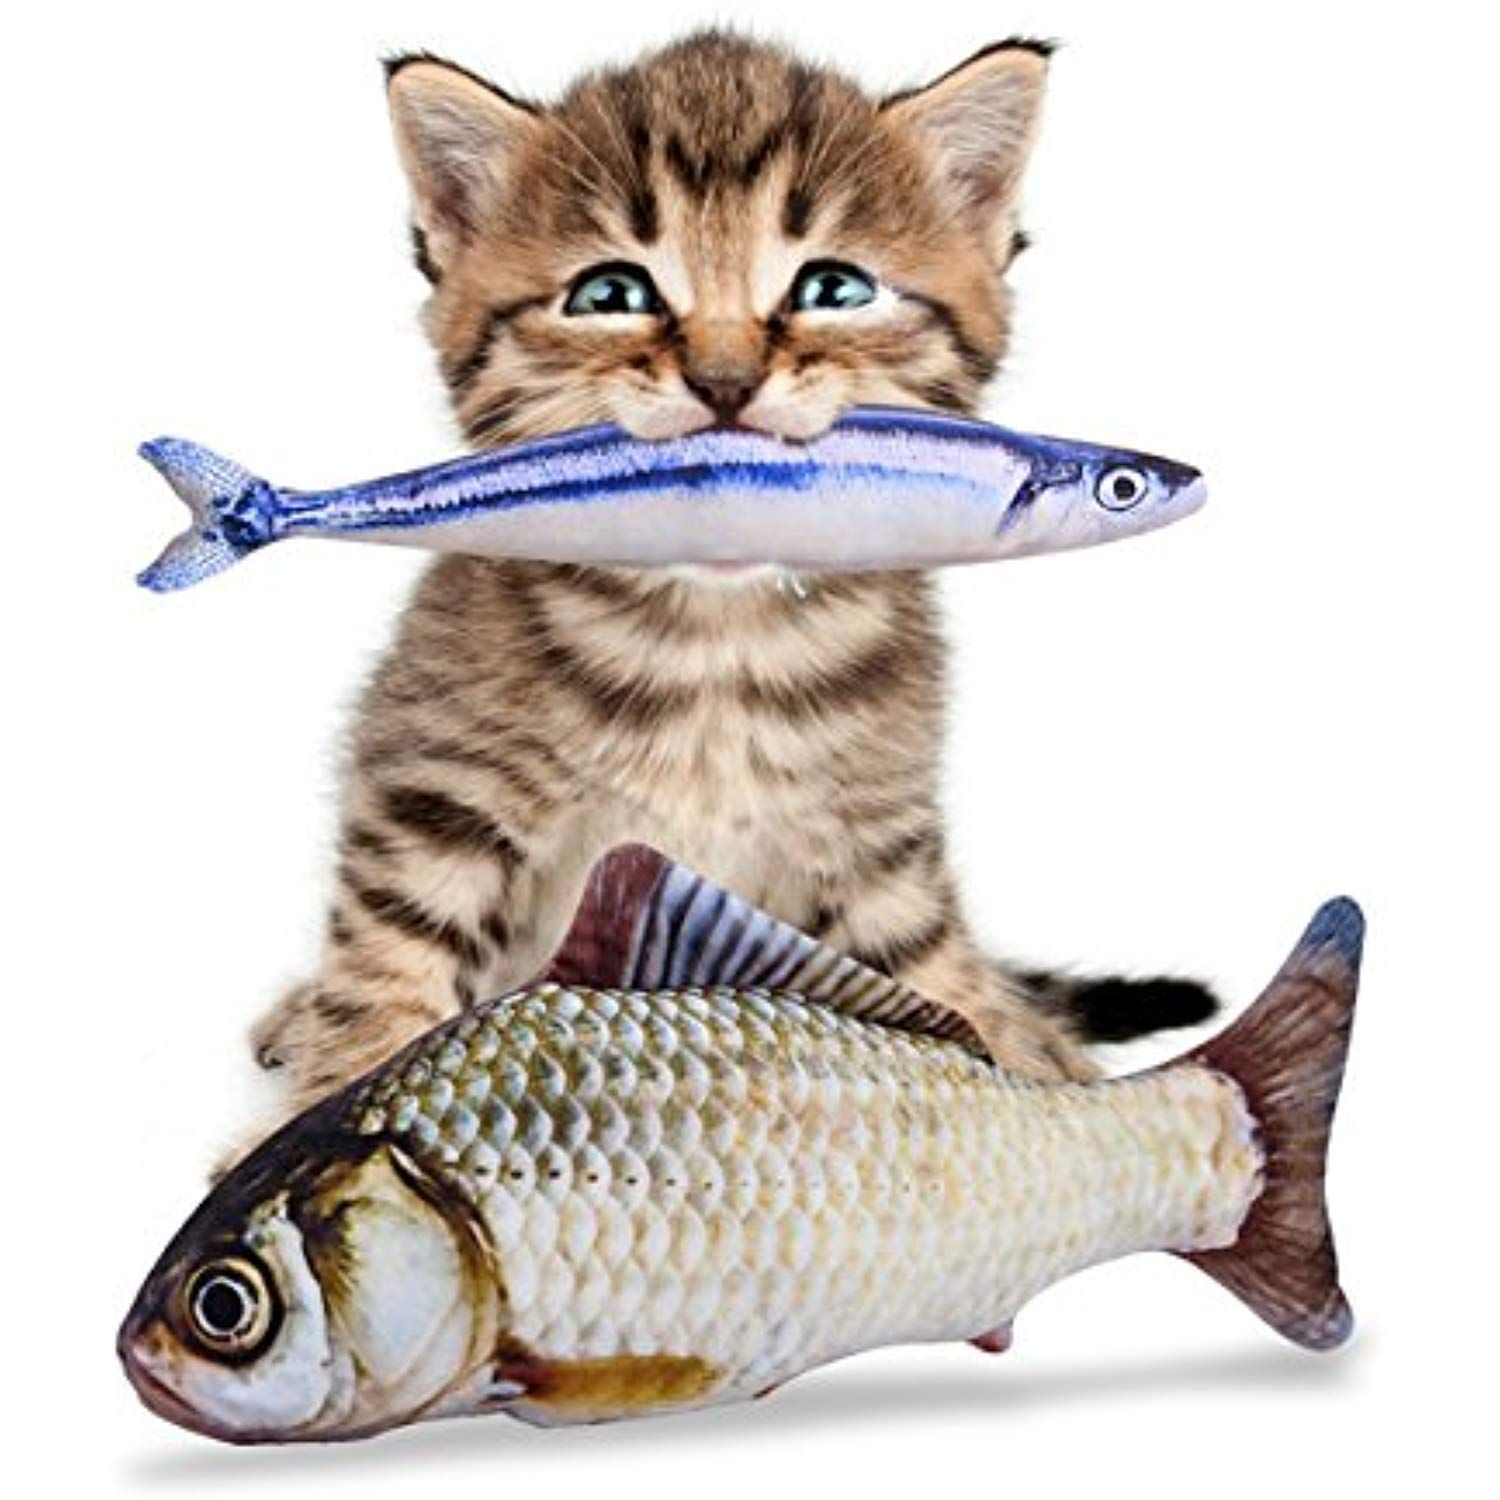 Pet Leso Catnip Fish Toy Refillable Catnip Toys 11 8a 30cm Length 1 A Grass Carp And 1 A Saury 2 Pack You Animal Pillows Cat Toys Catnip Cat Toy